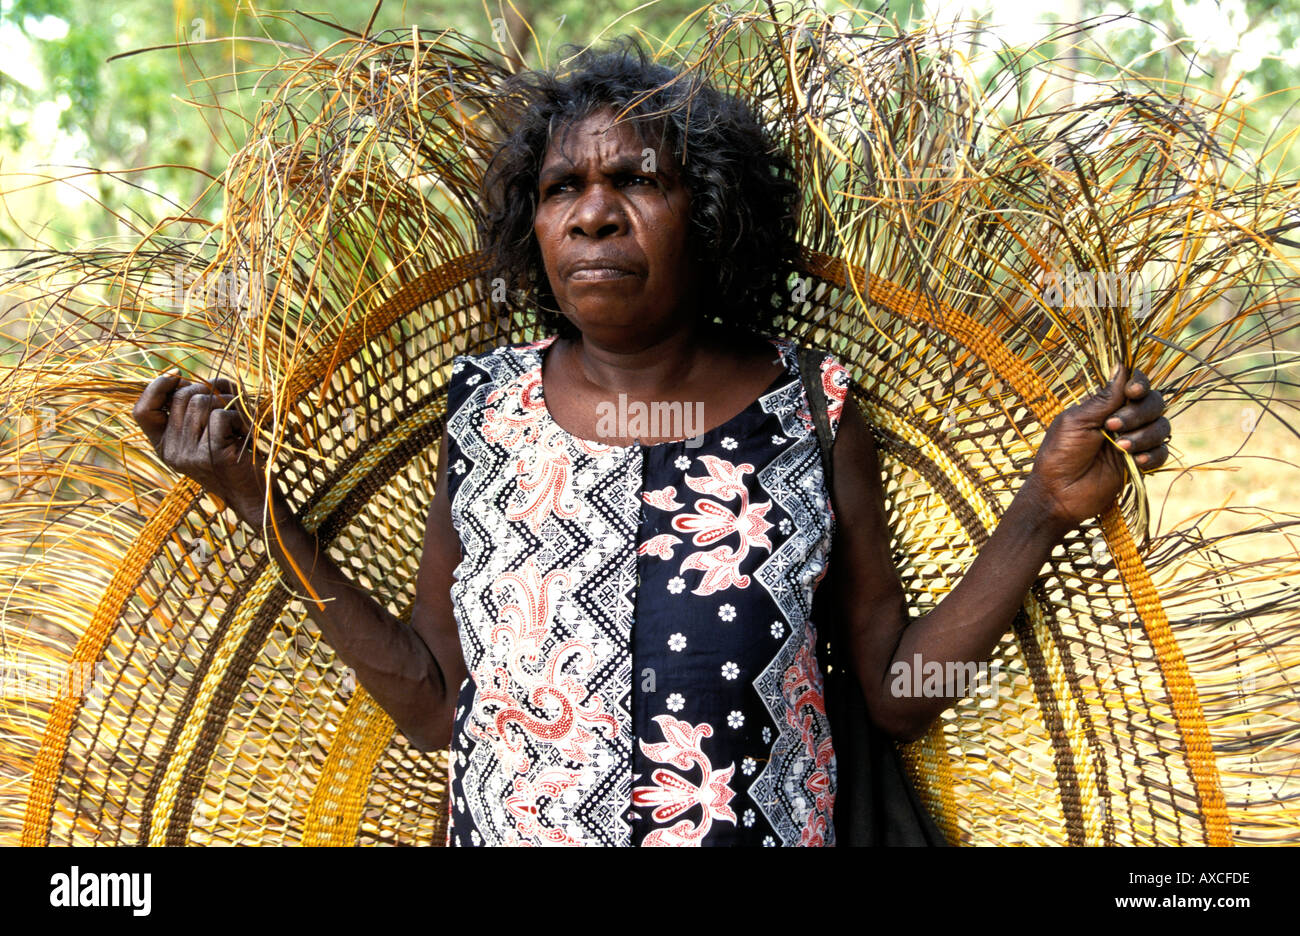 aboriginal woman artist judy baypungnalala with